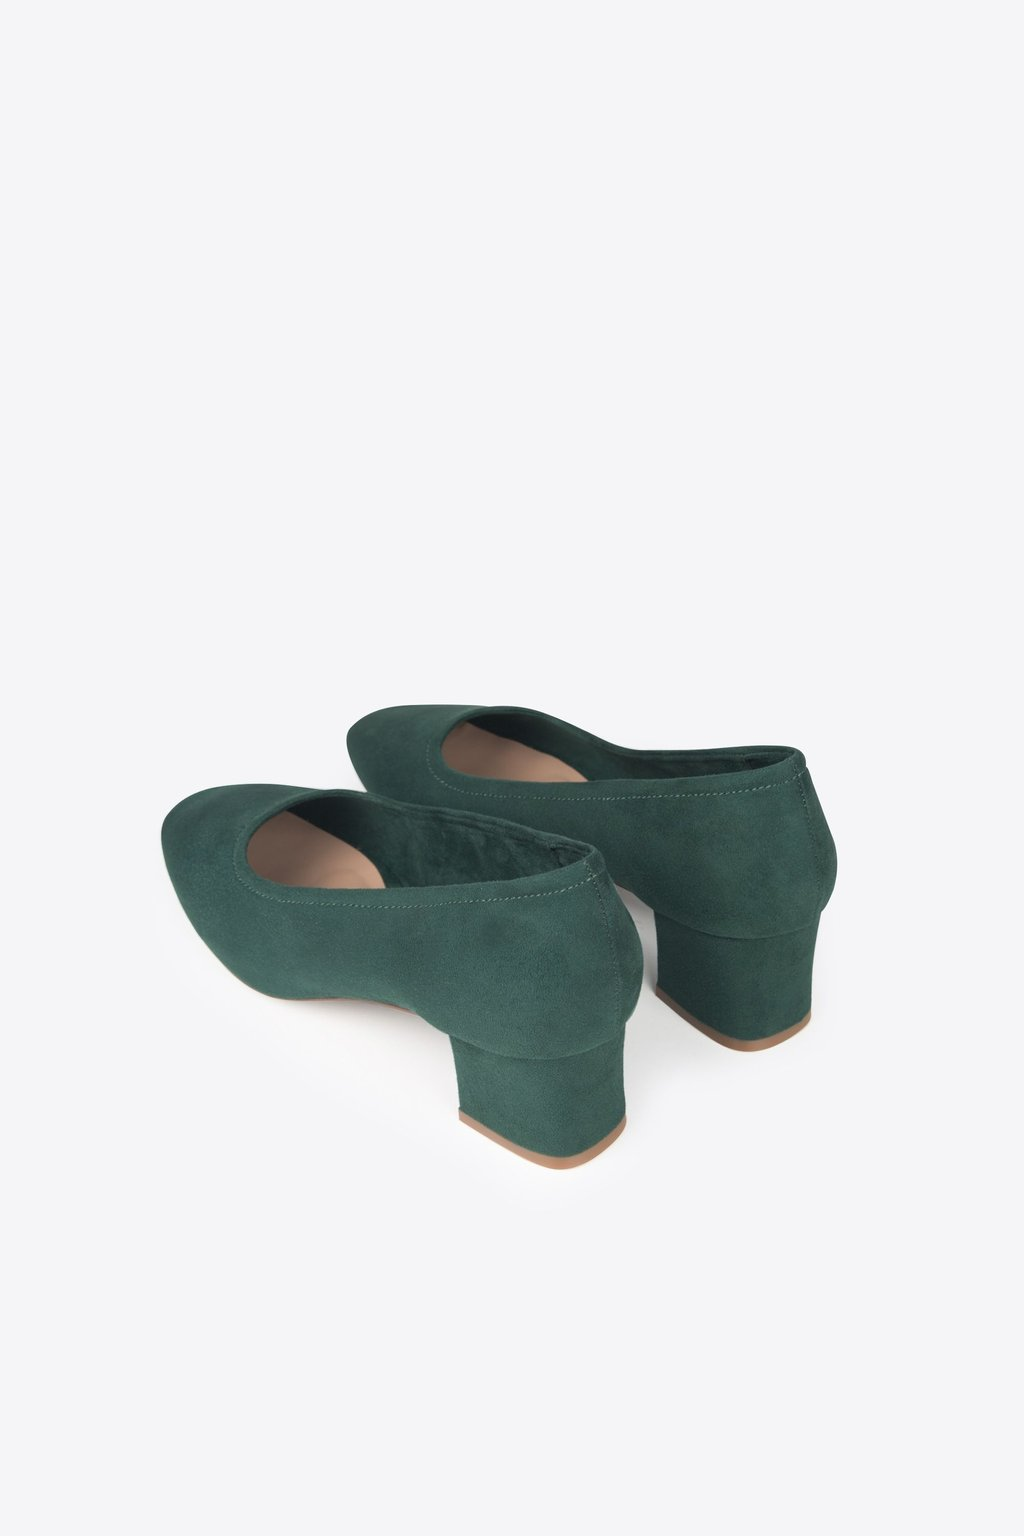 Block Heel 1896 Forest Green 8